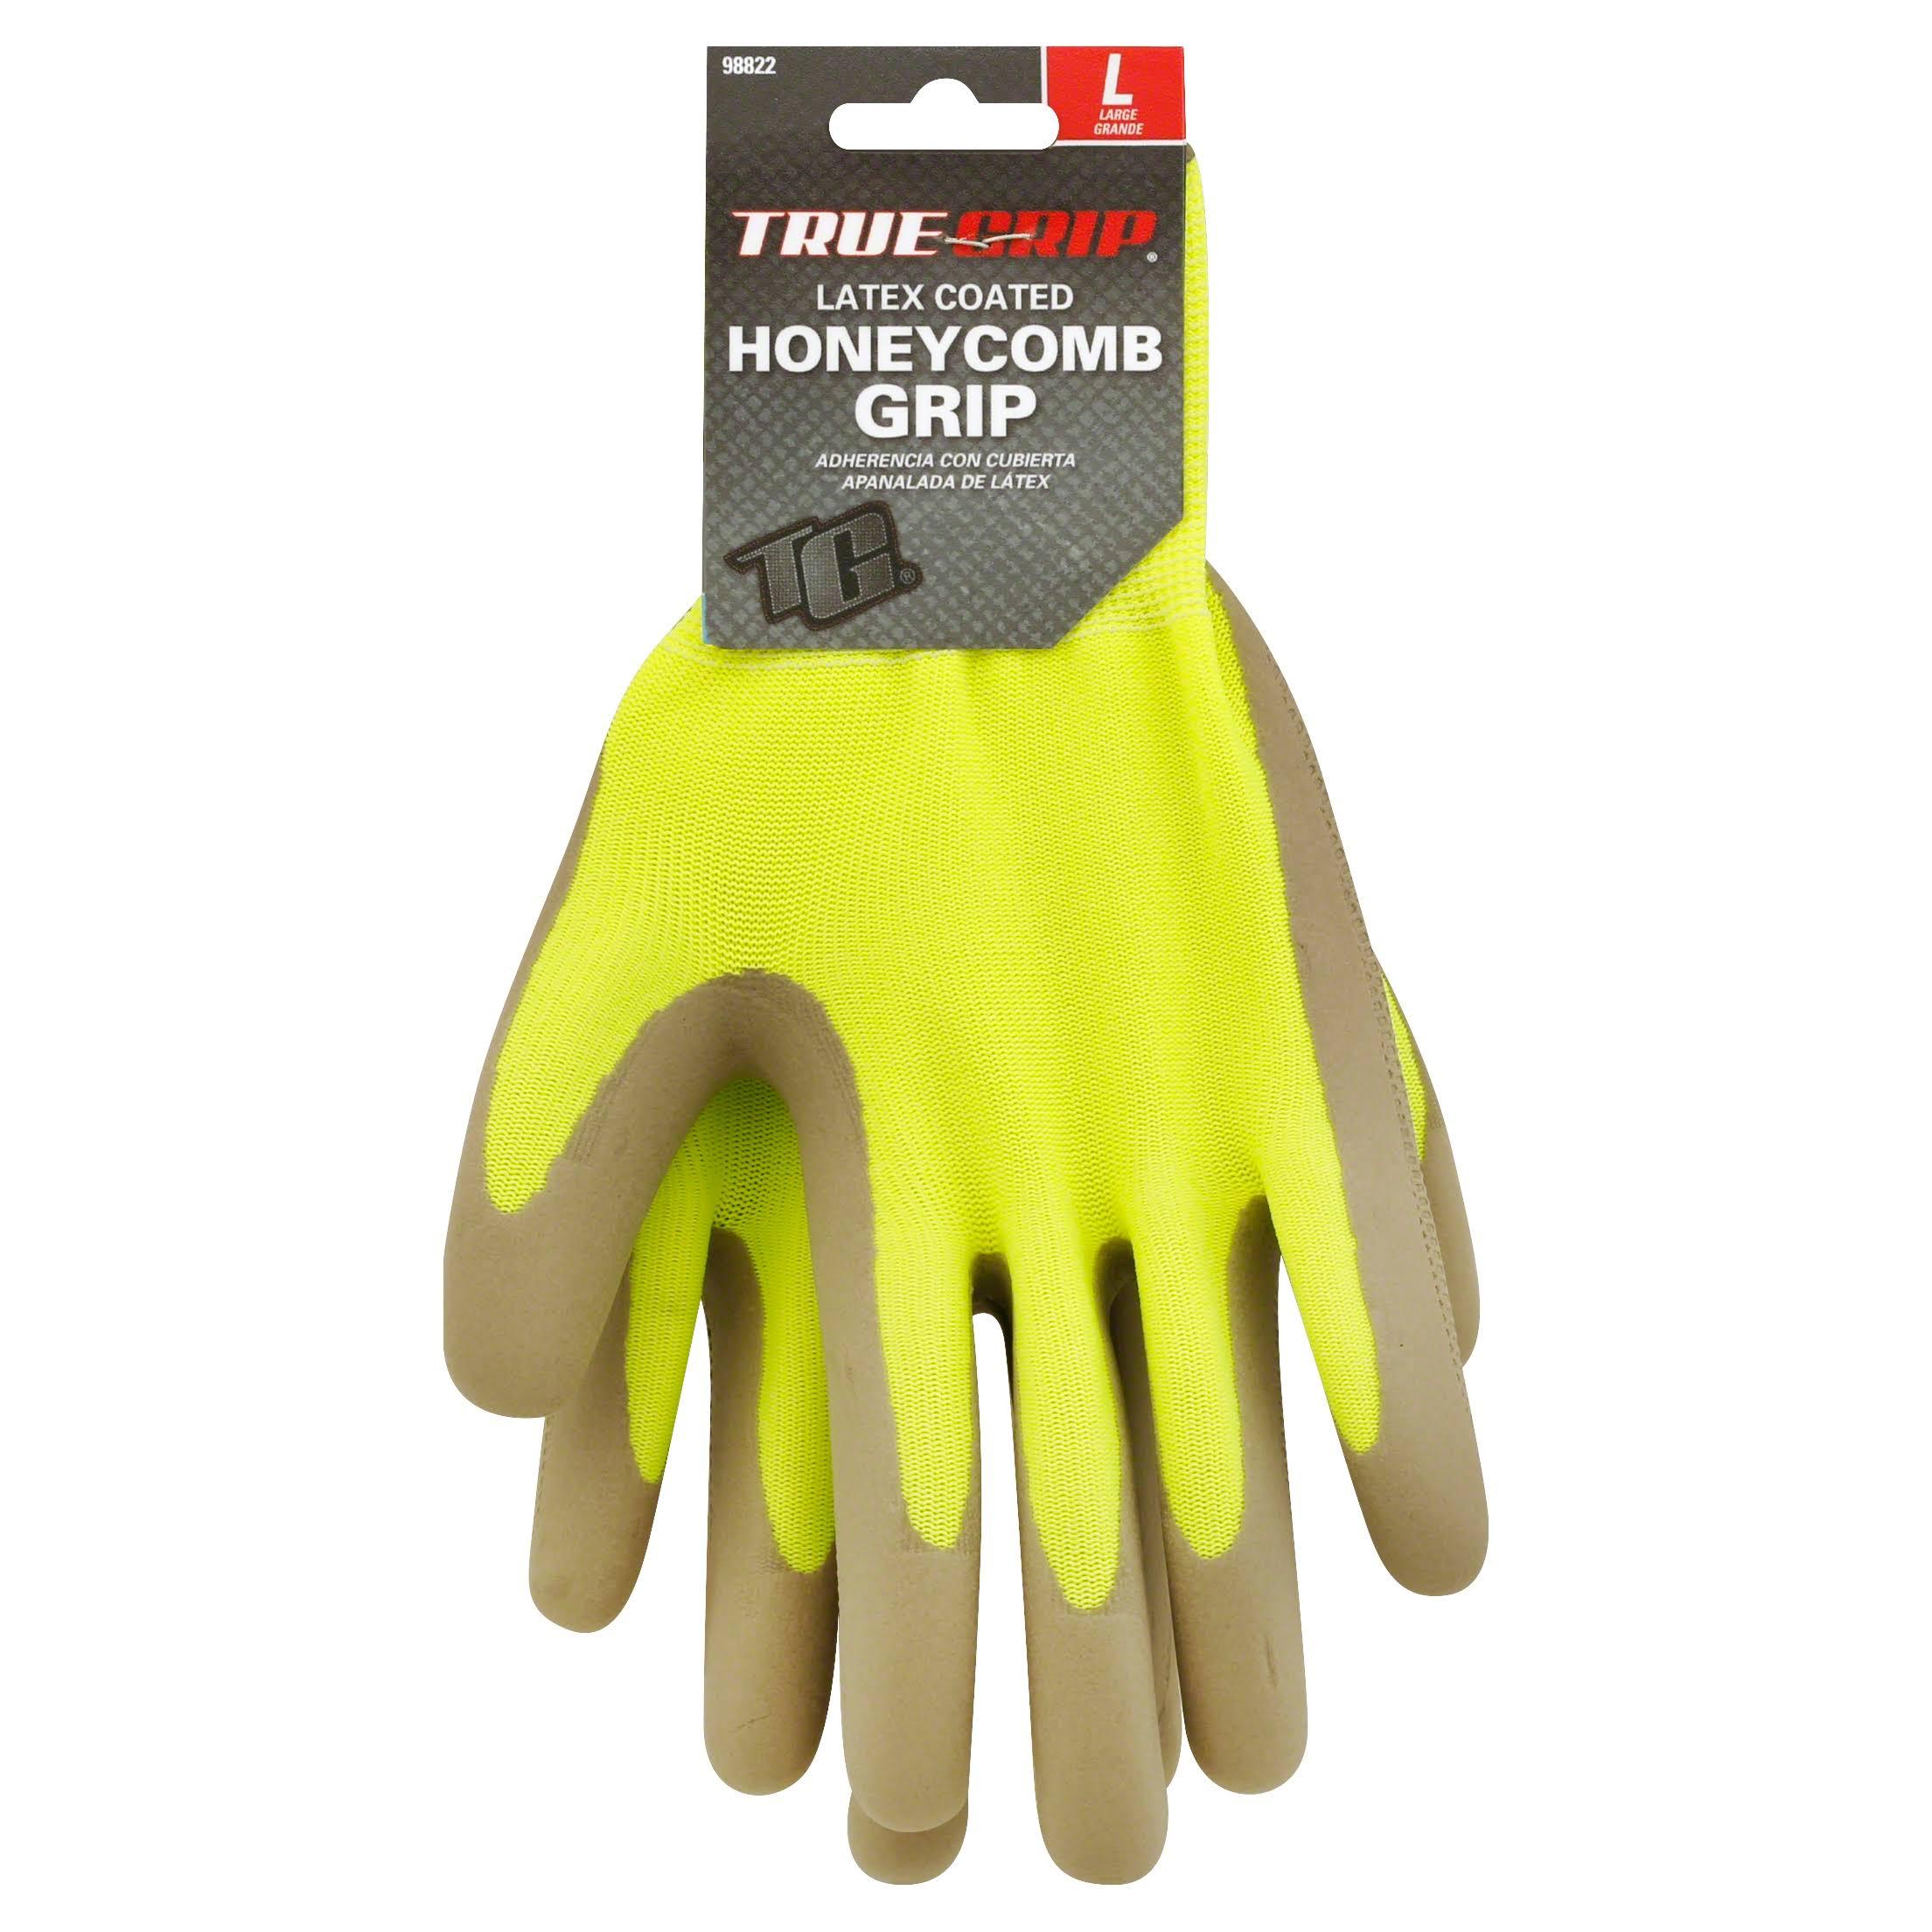 True Grip Gloves, Latex Coated, Honeycomb Grip, Large